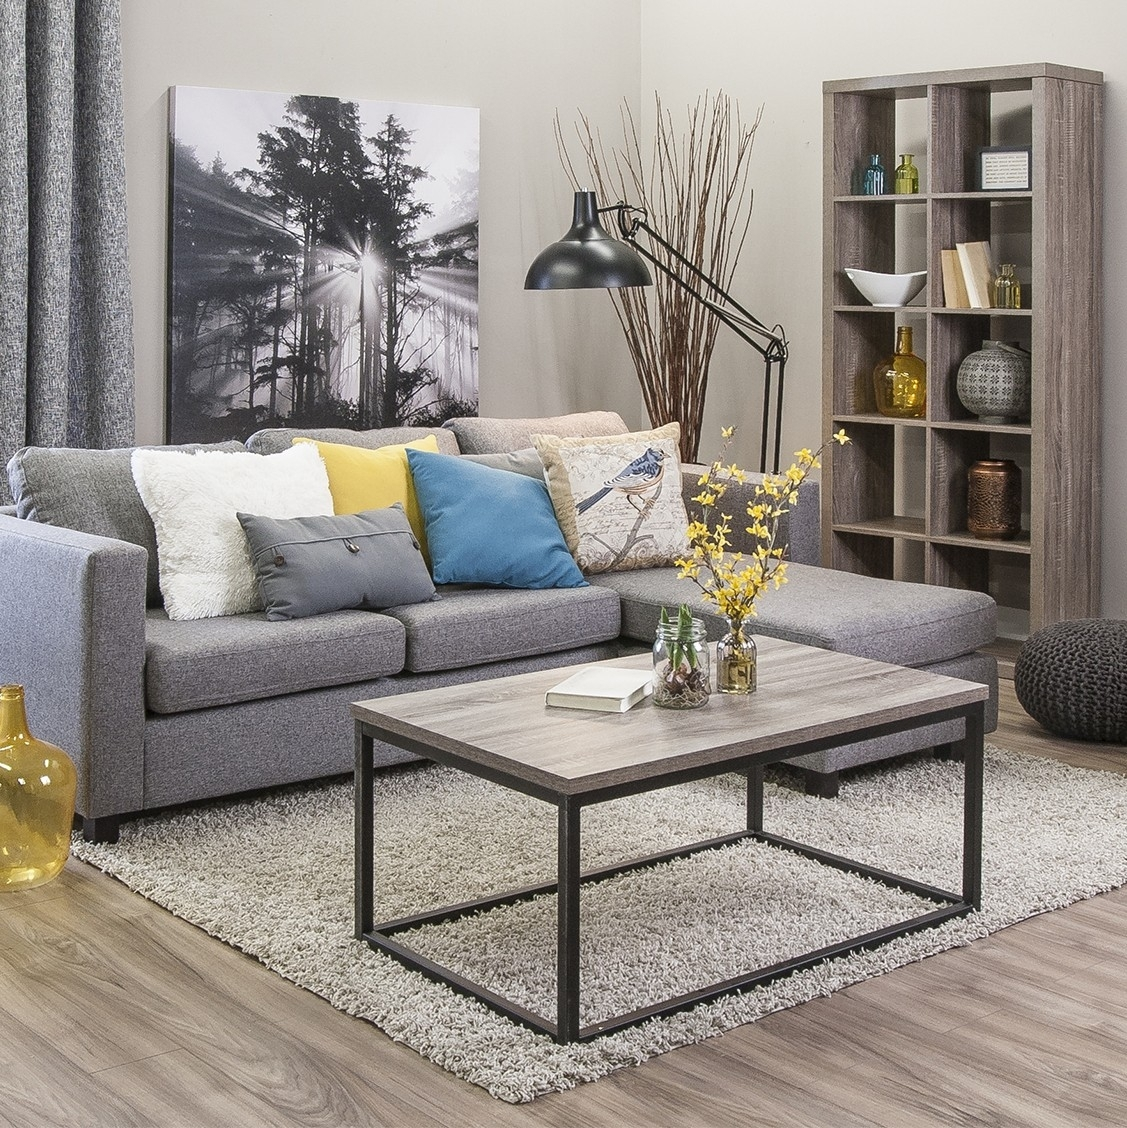 Casa Corner Sofa (Grey) with regard to Jysk Sectional Sofas (Image 4 of 10)